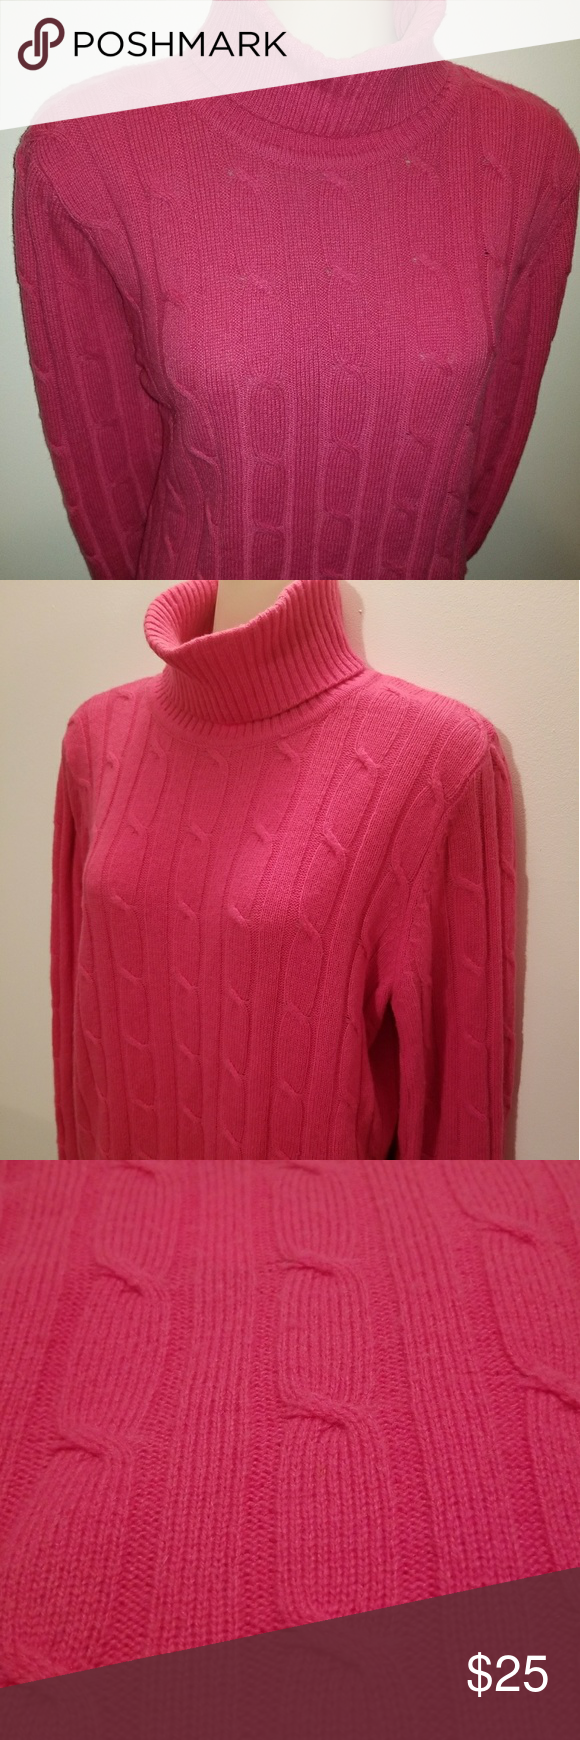 Pink Cable Knit L.L. Bean Sweater | Cable knitting, Wool blend and ...